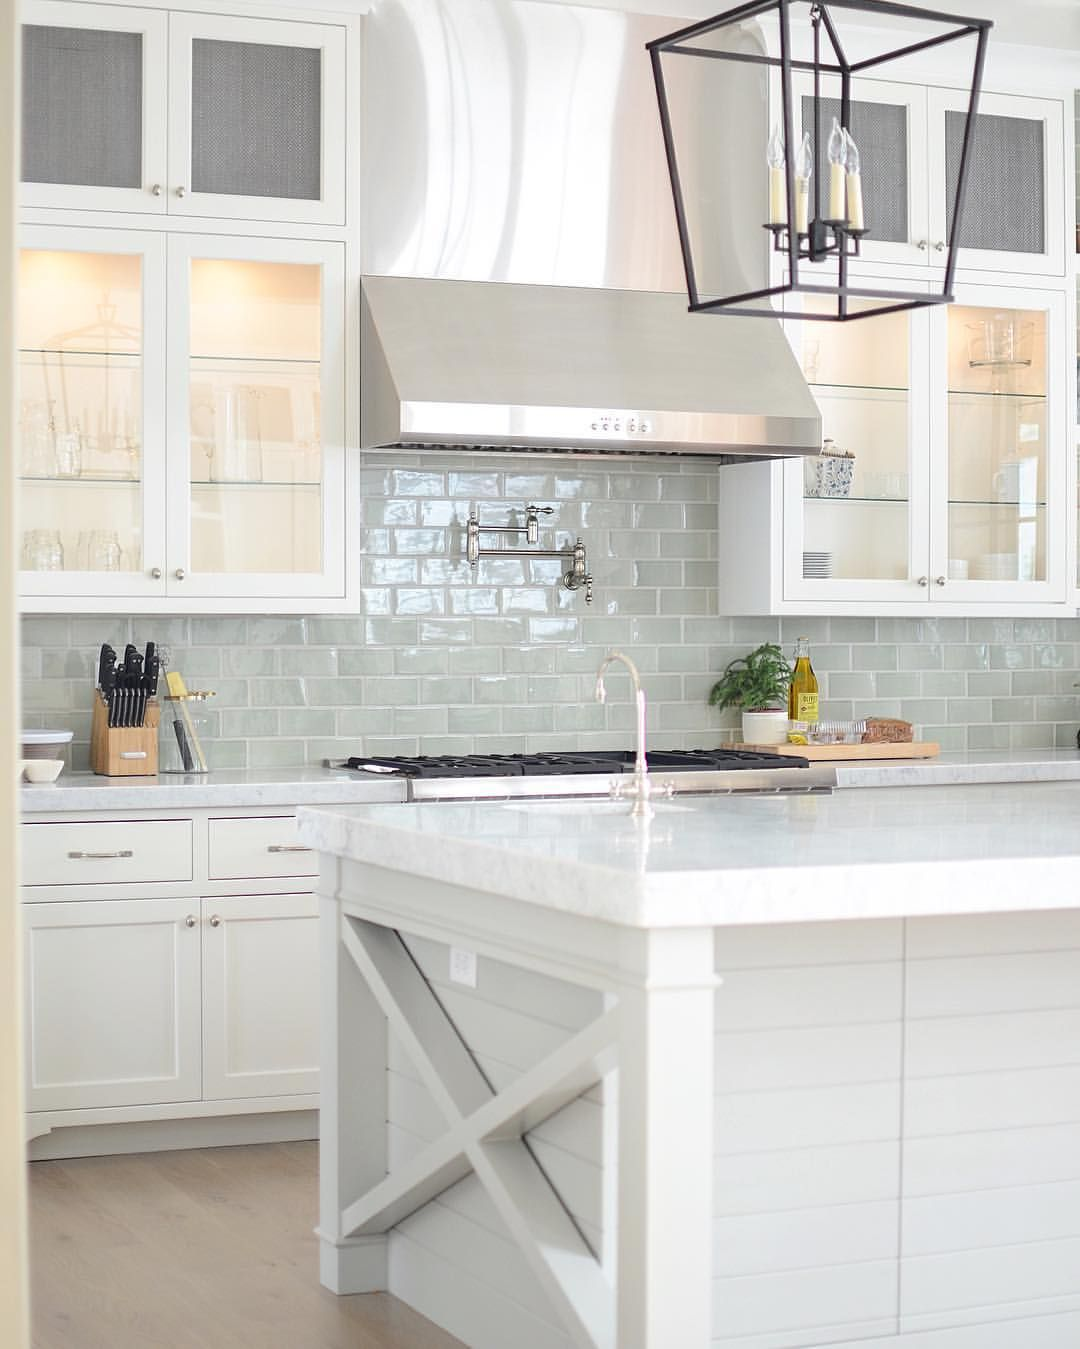 Backsplashes For White Kitchens Bright White Kitchen With Pale Blue Subway Tile Backsplash